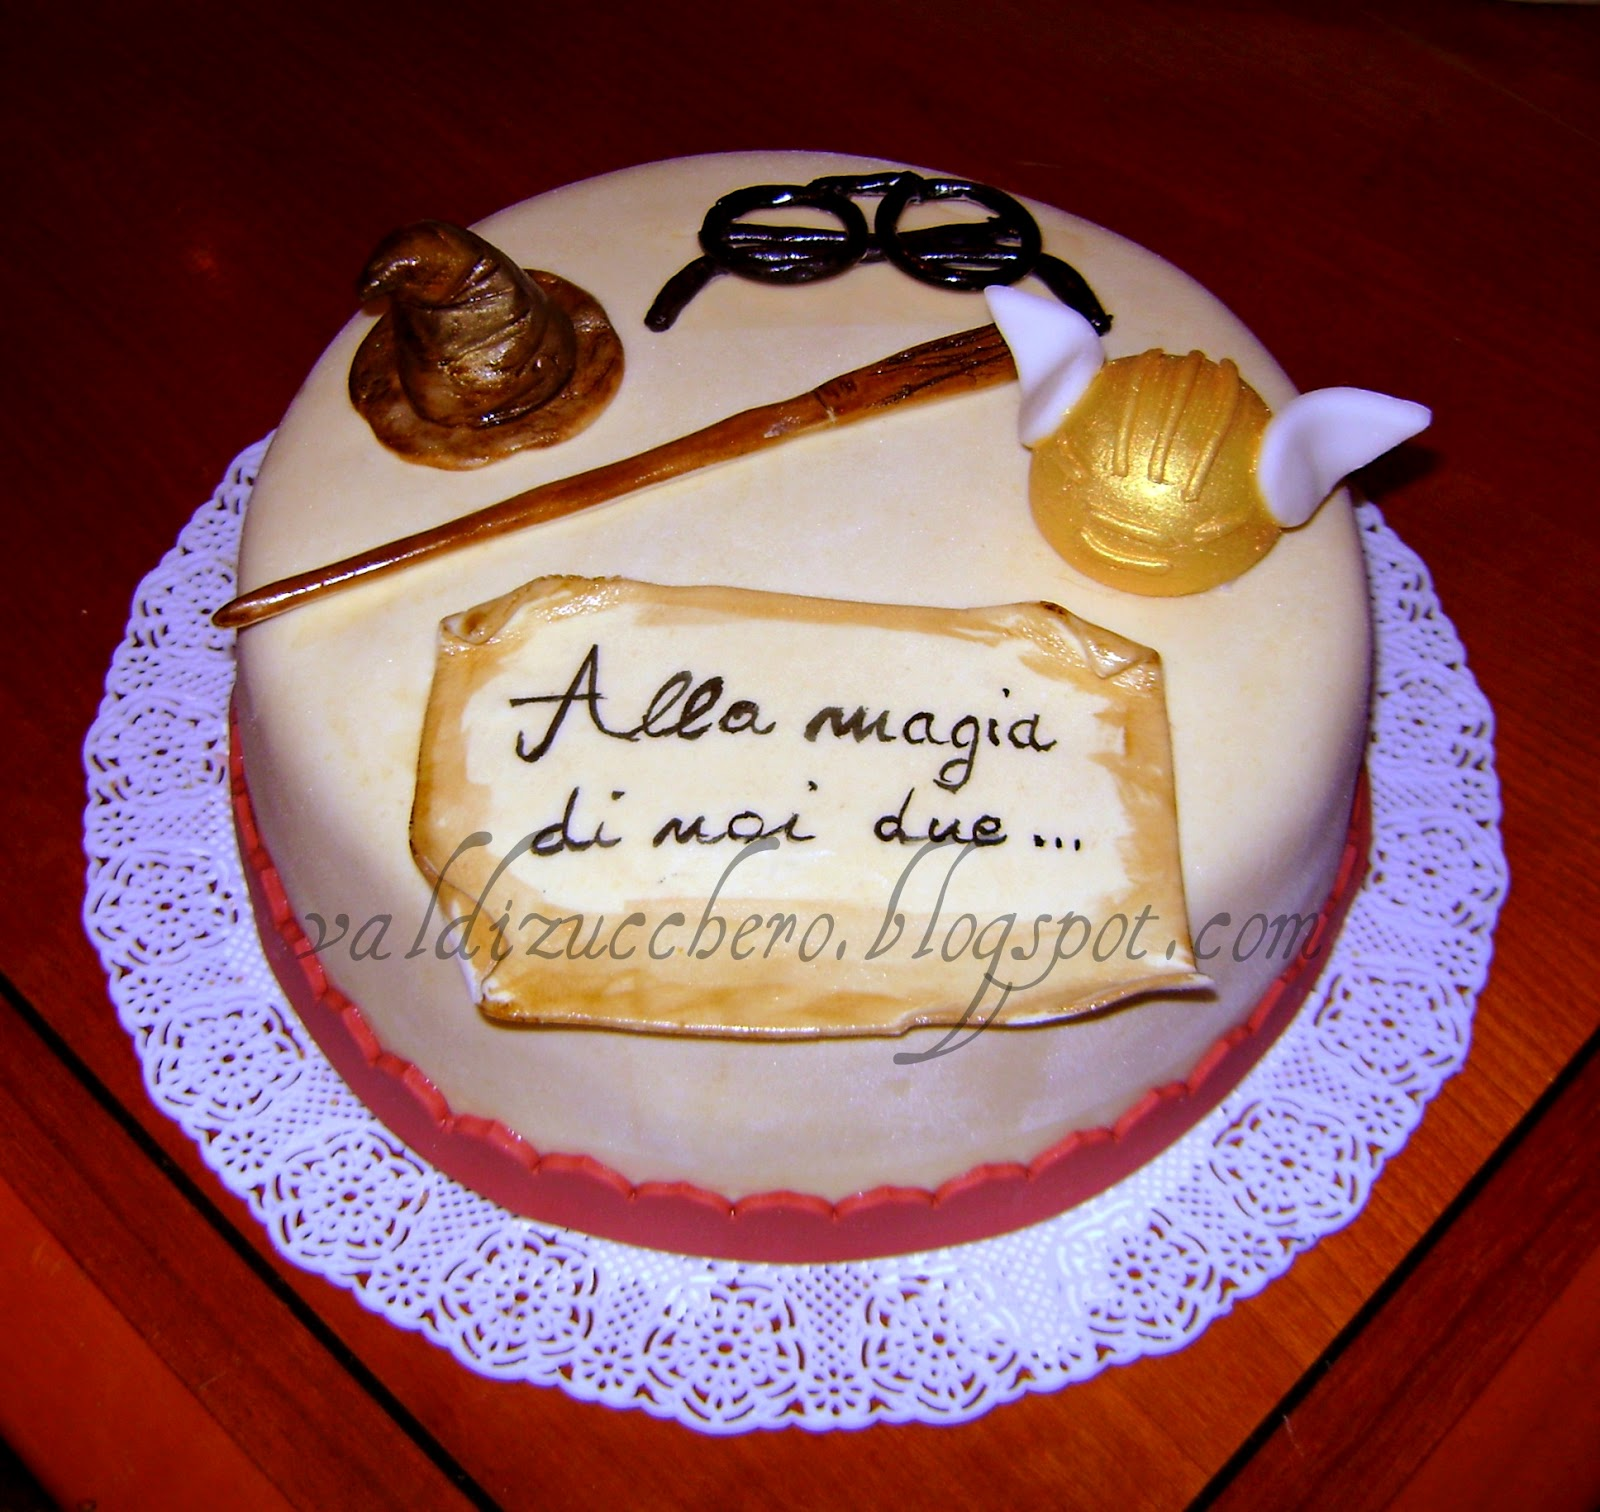 val di zucchero harry potter cake. Black Bedroom Furniture Sets. Home Design Ideas